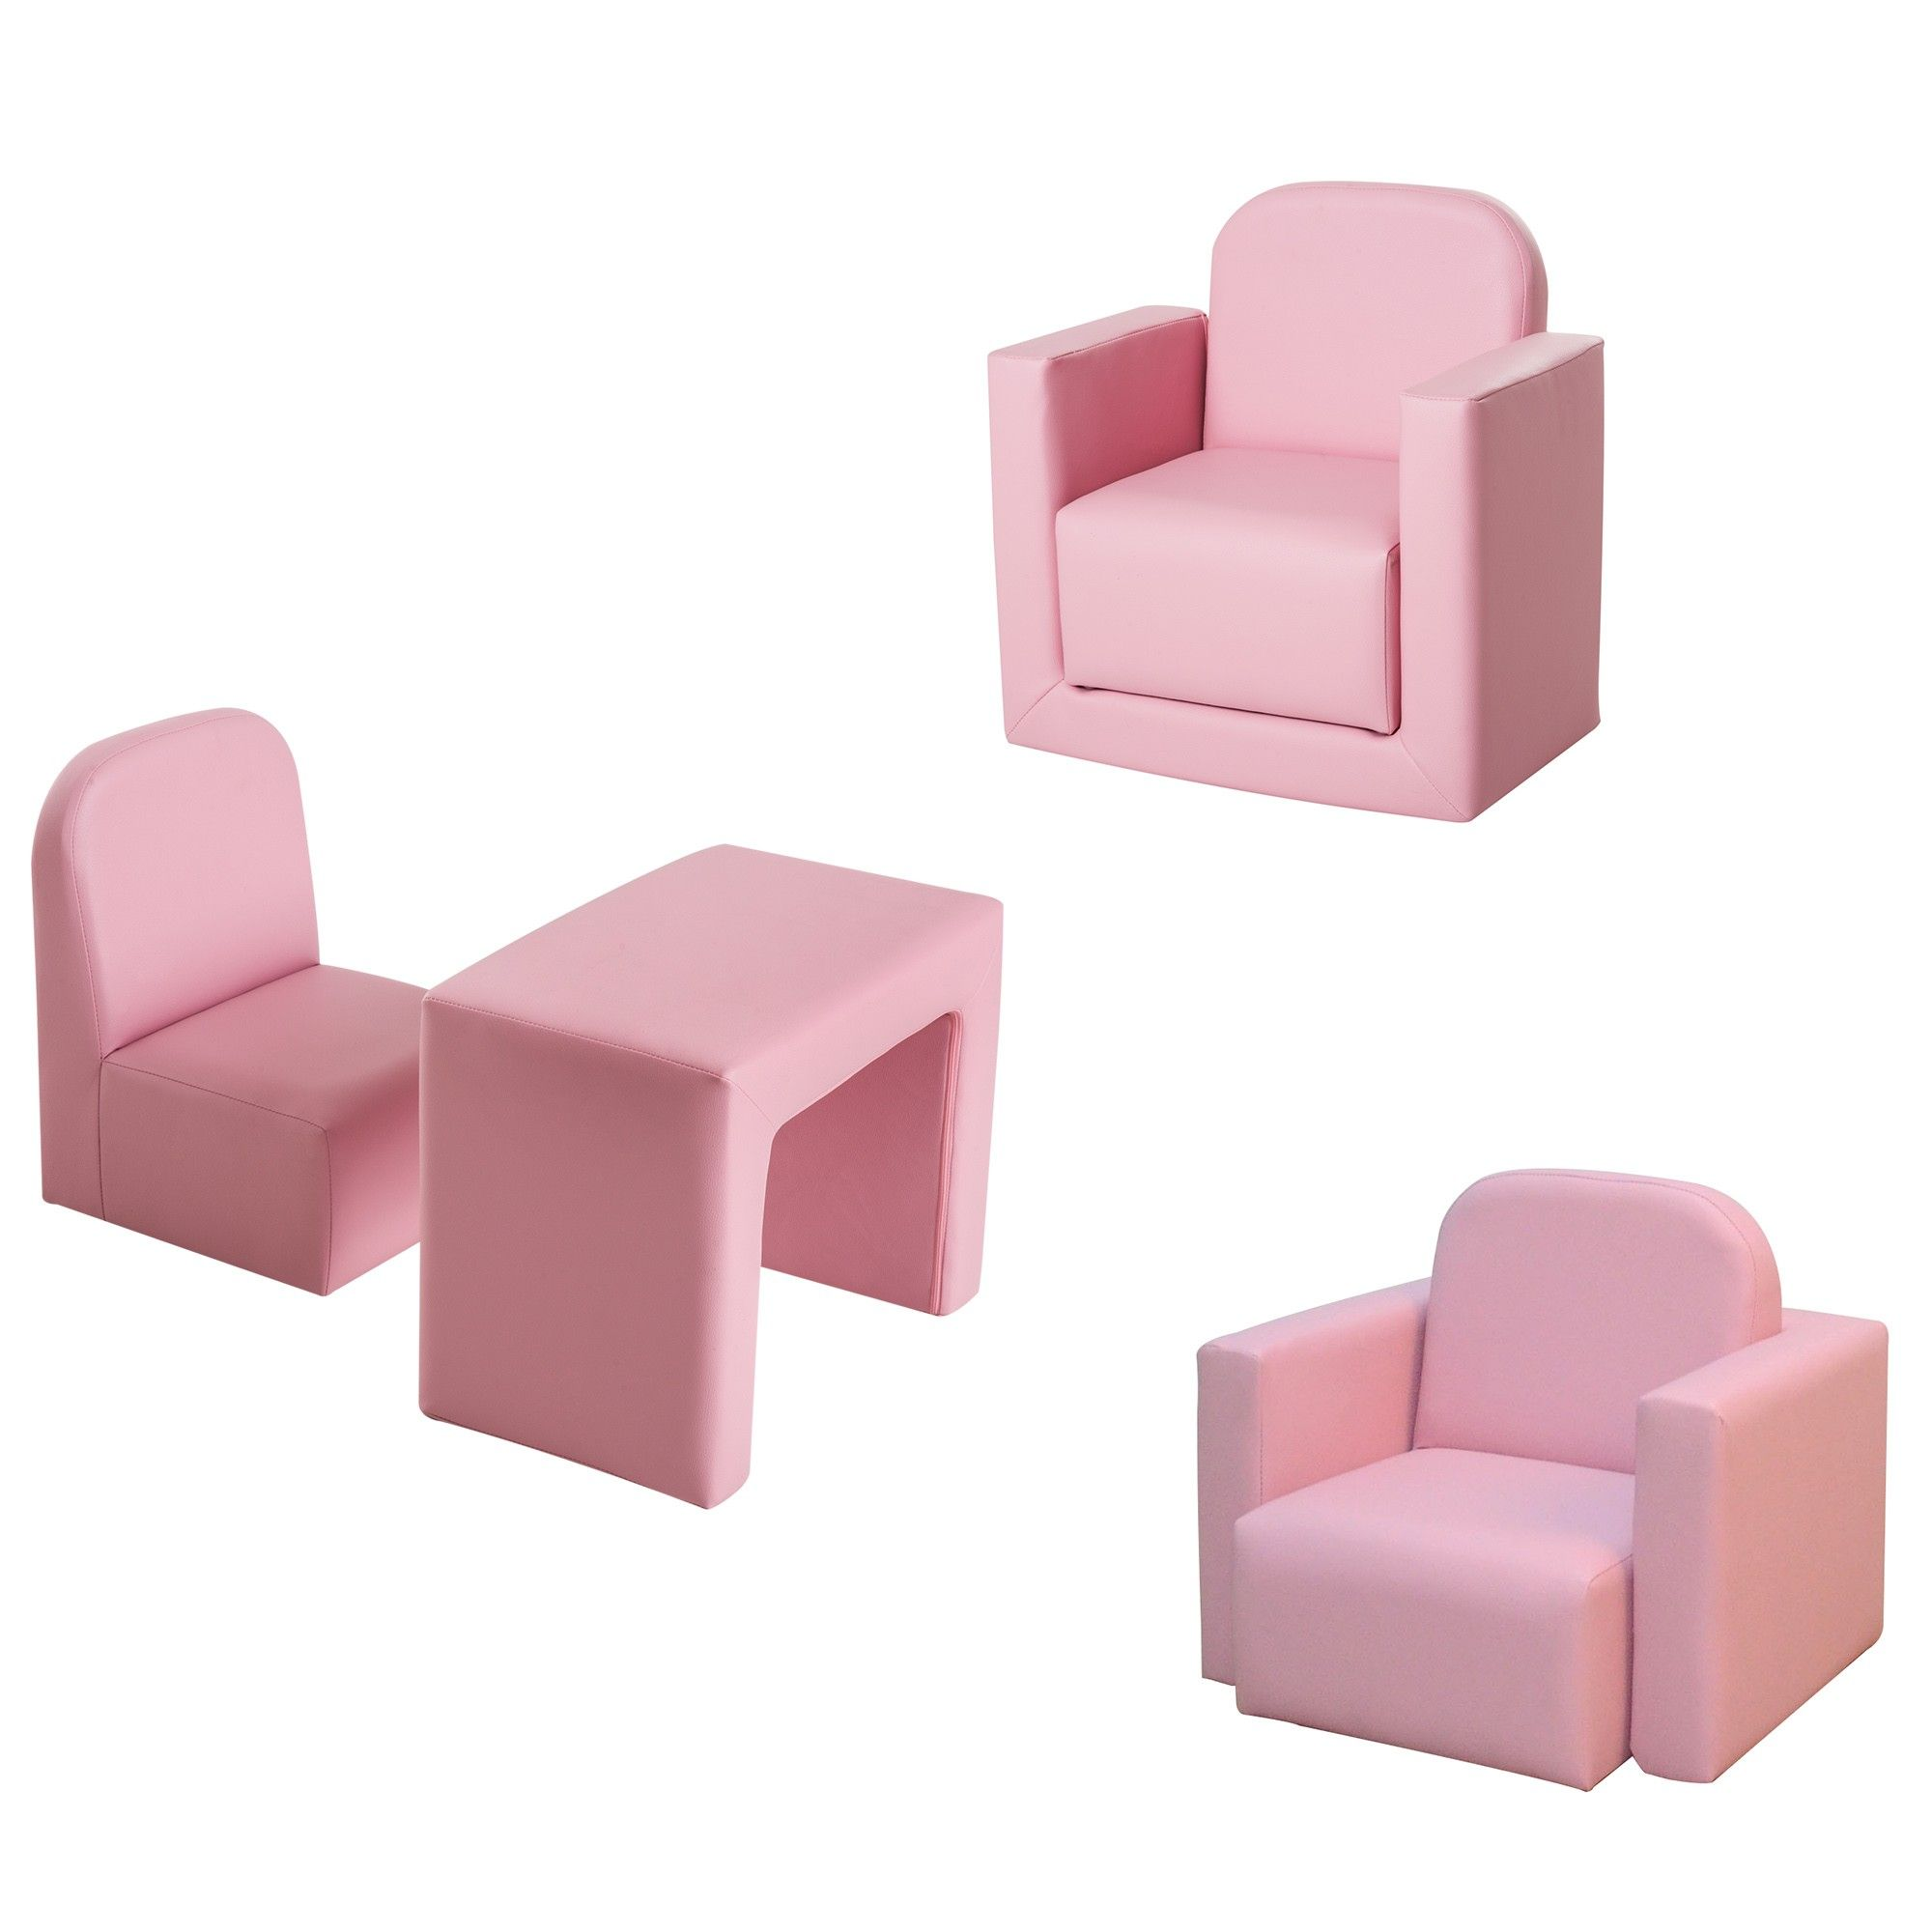 Homcom Kids 3 In 1 Table And Chair Set Mini Sofa Armchair Game Relax Playroom Seater Pink Aosom Uk Childrens Bedroom Furniture Mini Sofa Chair Set